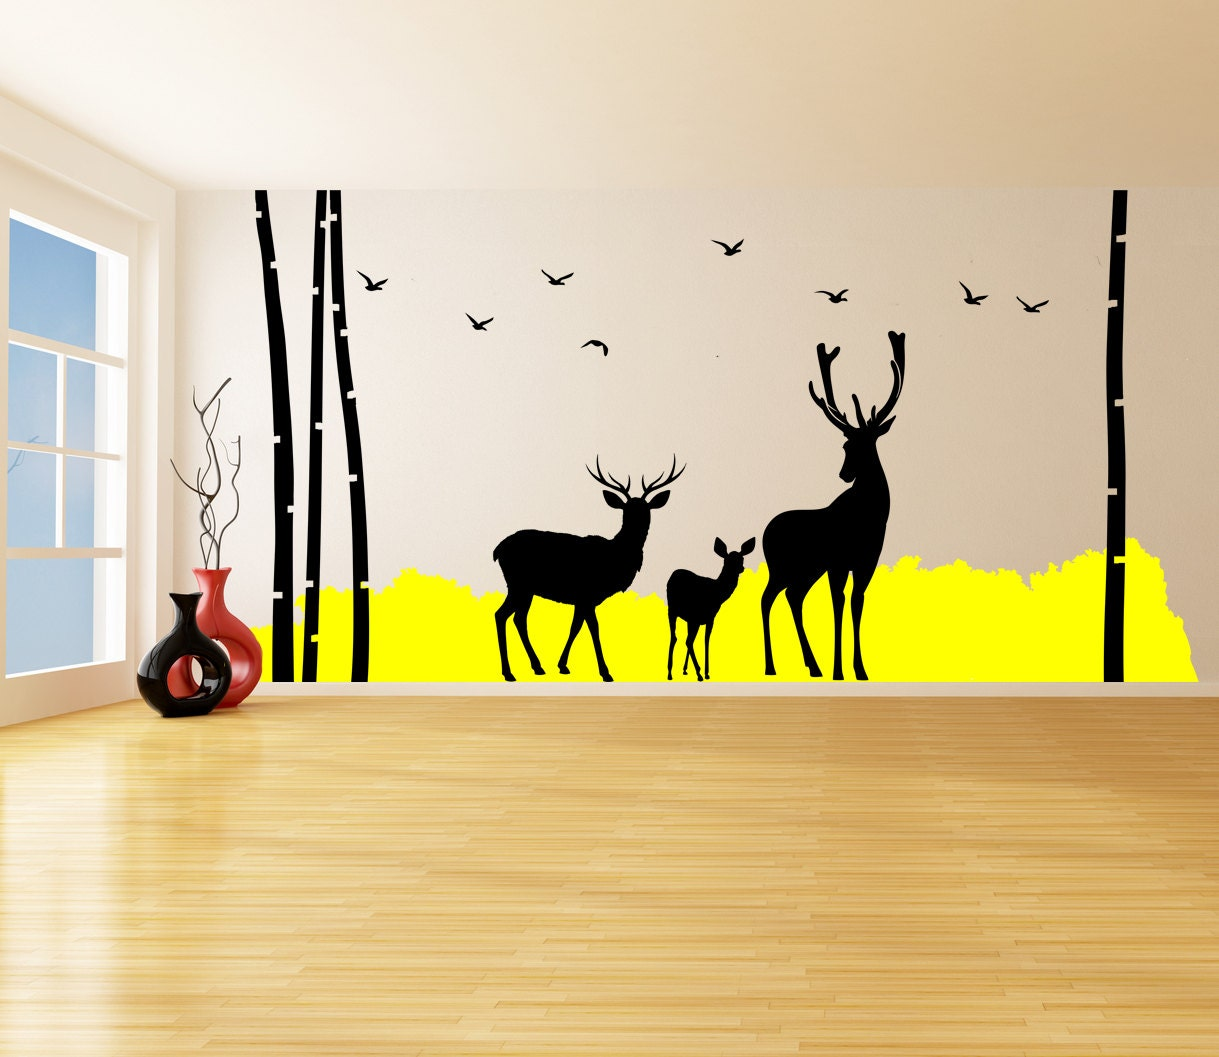 Vinyl Wall Decal Tree Bushes Birds & Deer Silhouette Color